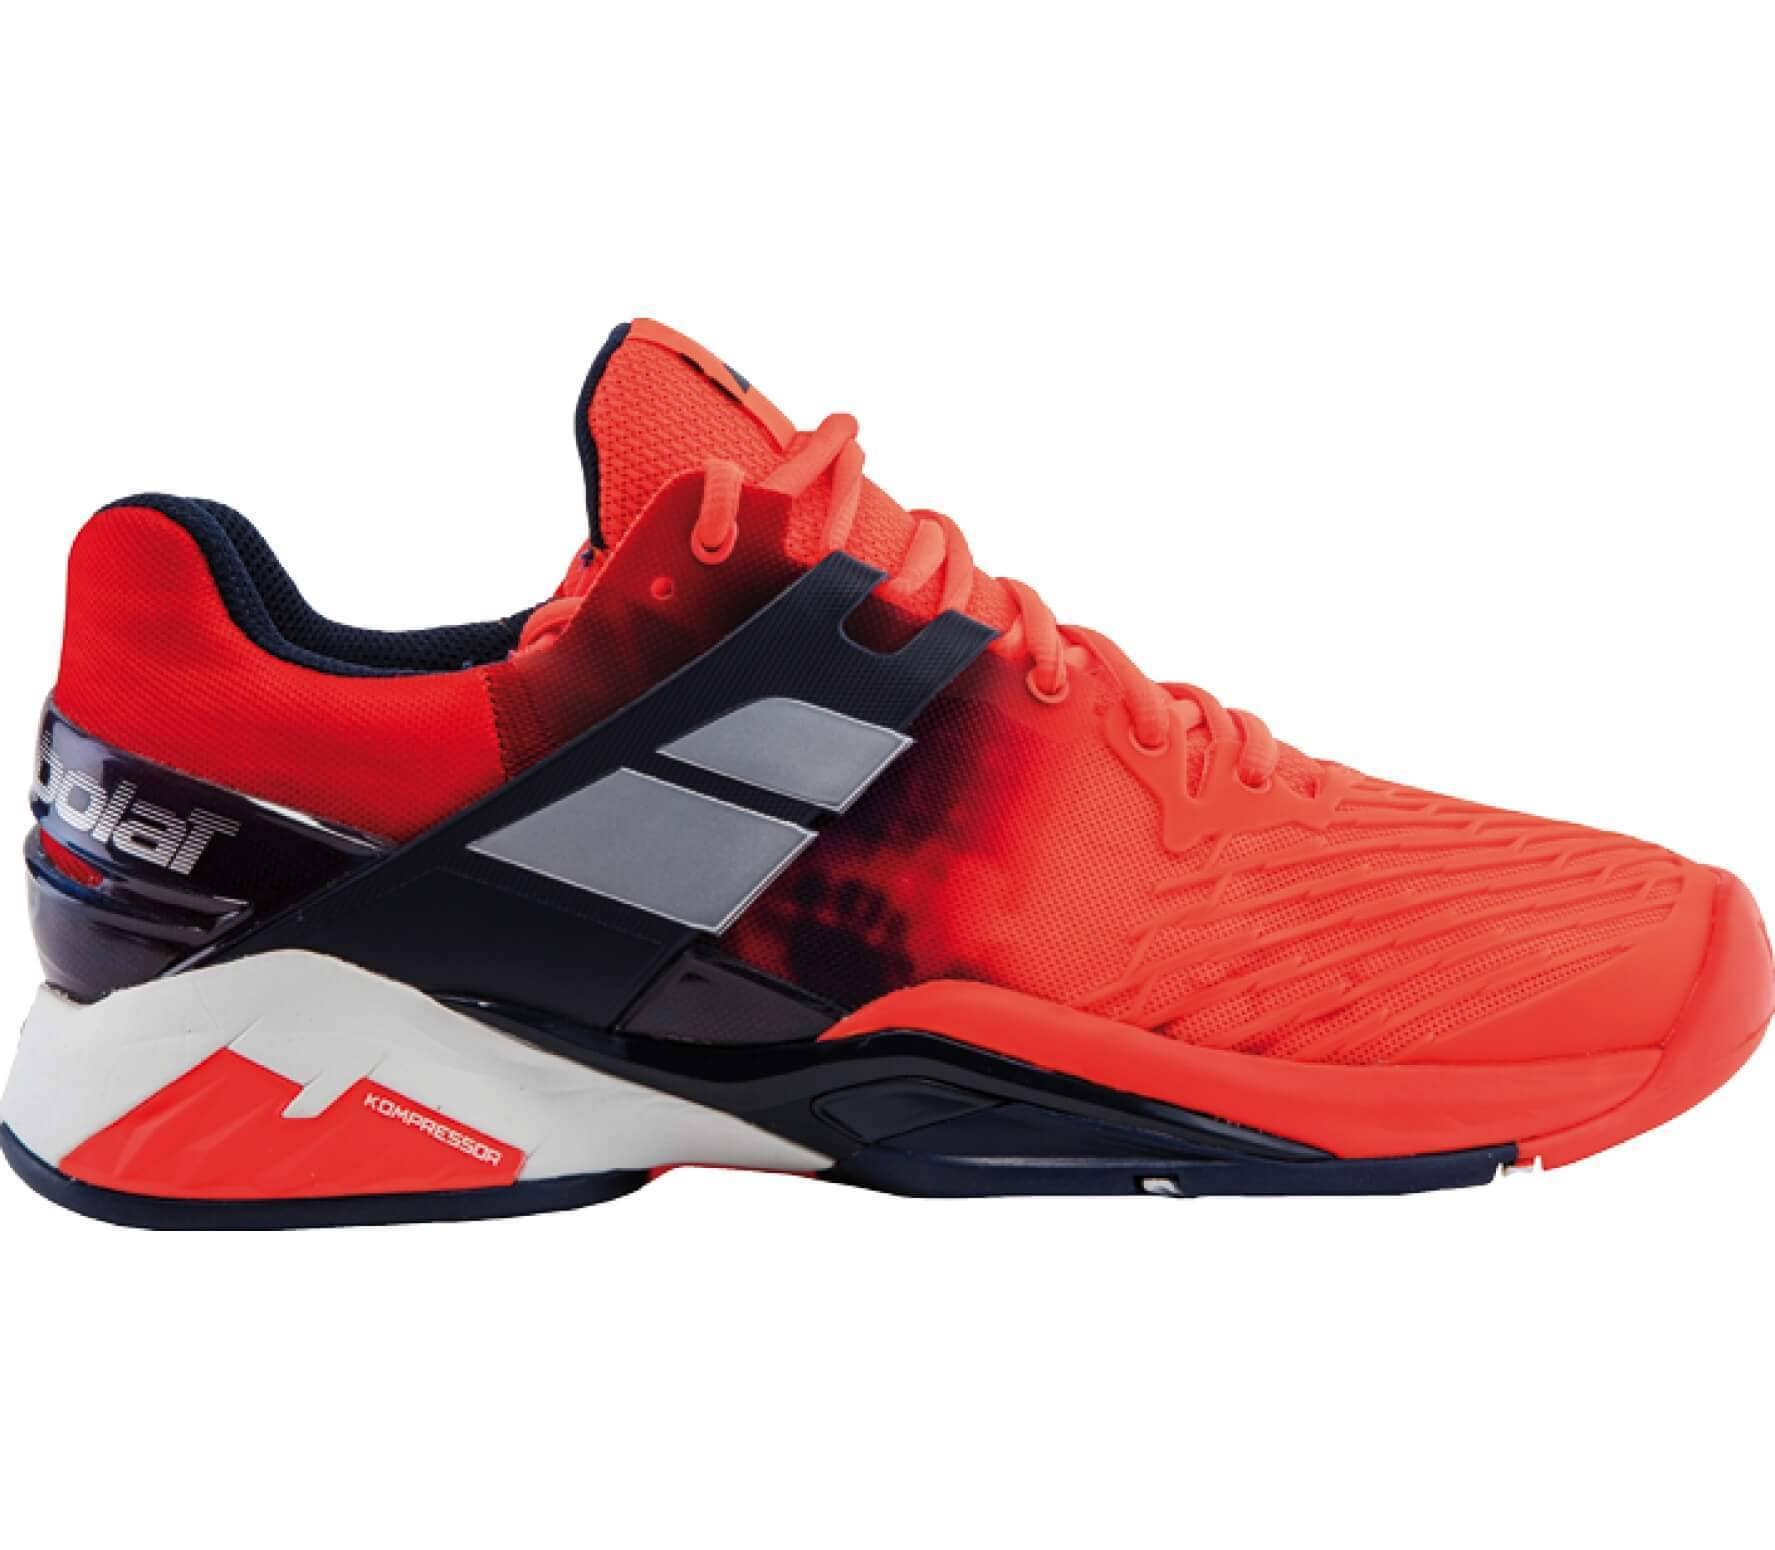 Babolat Propulse Fury Clay Men S Tennis Shoes Red Black Buy It